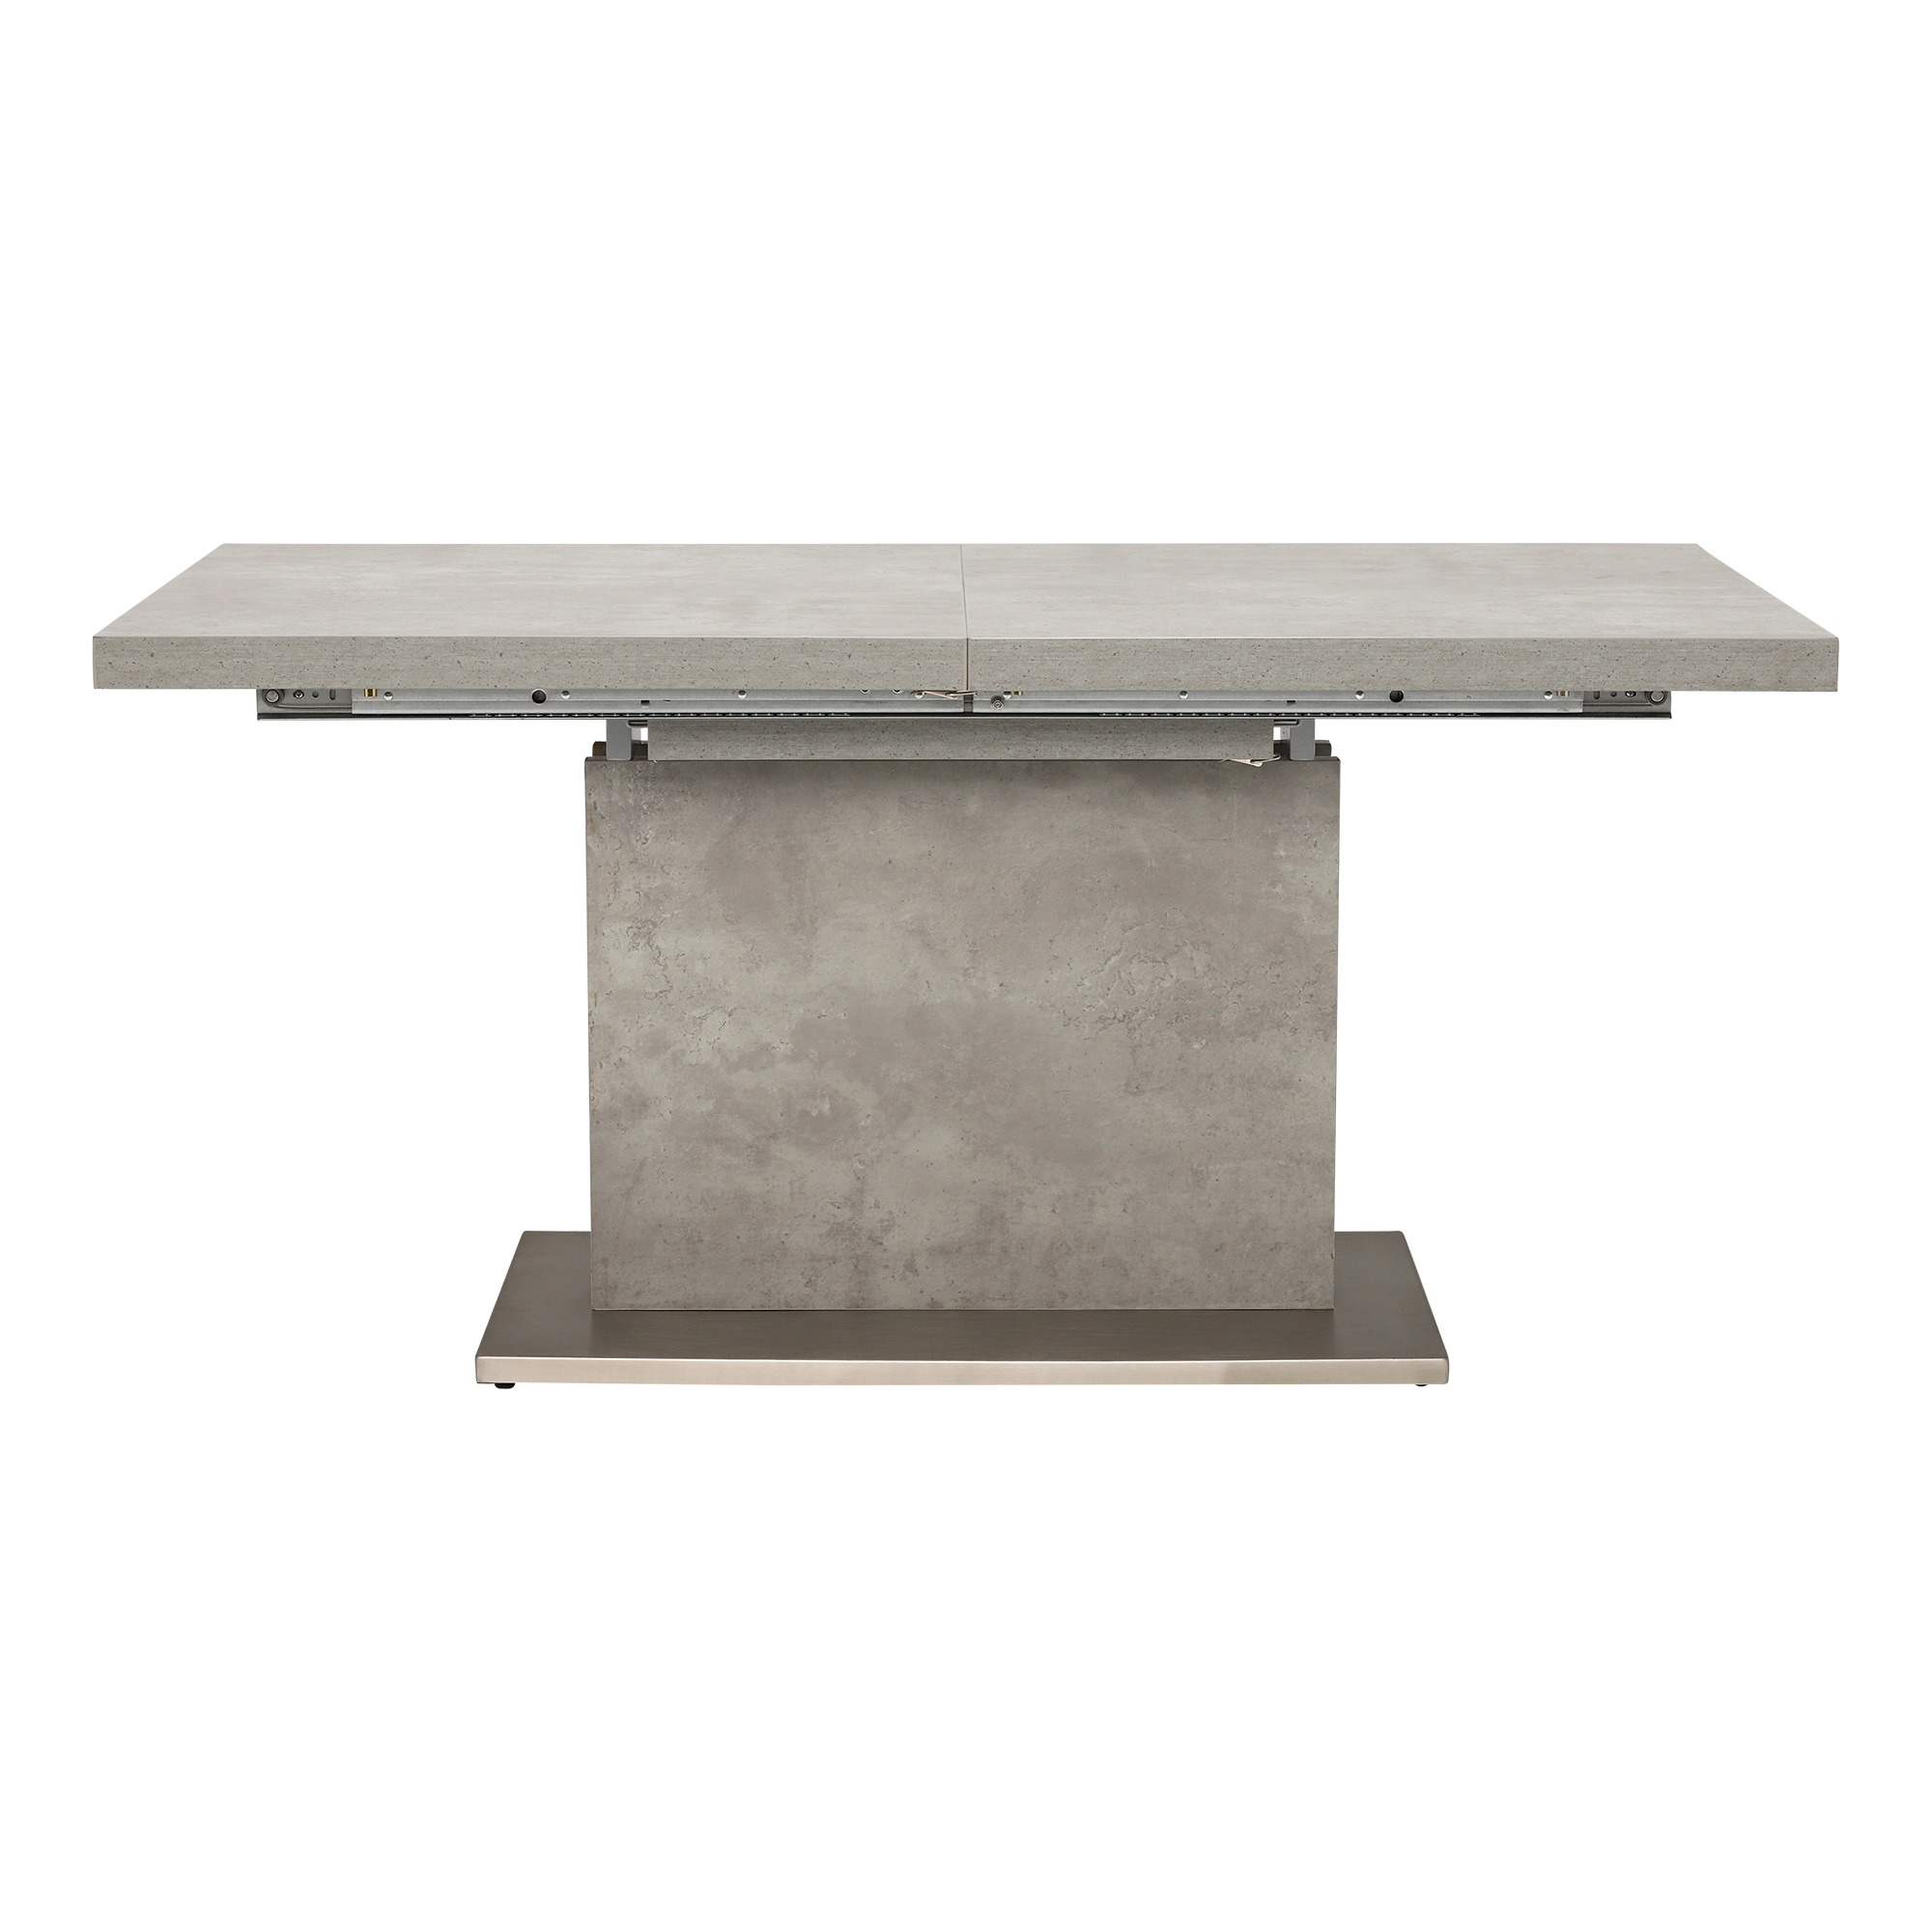 CONCRETE LOOK EXTENDING TABLE - FRONT DETAIL